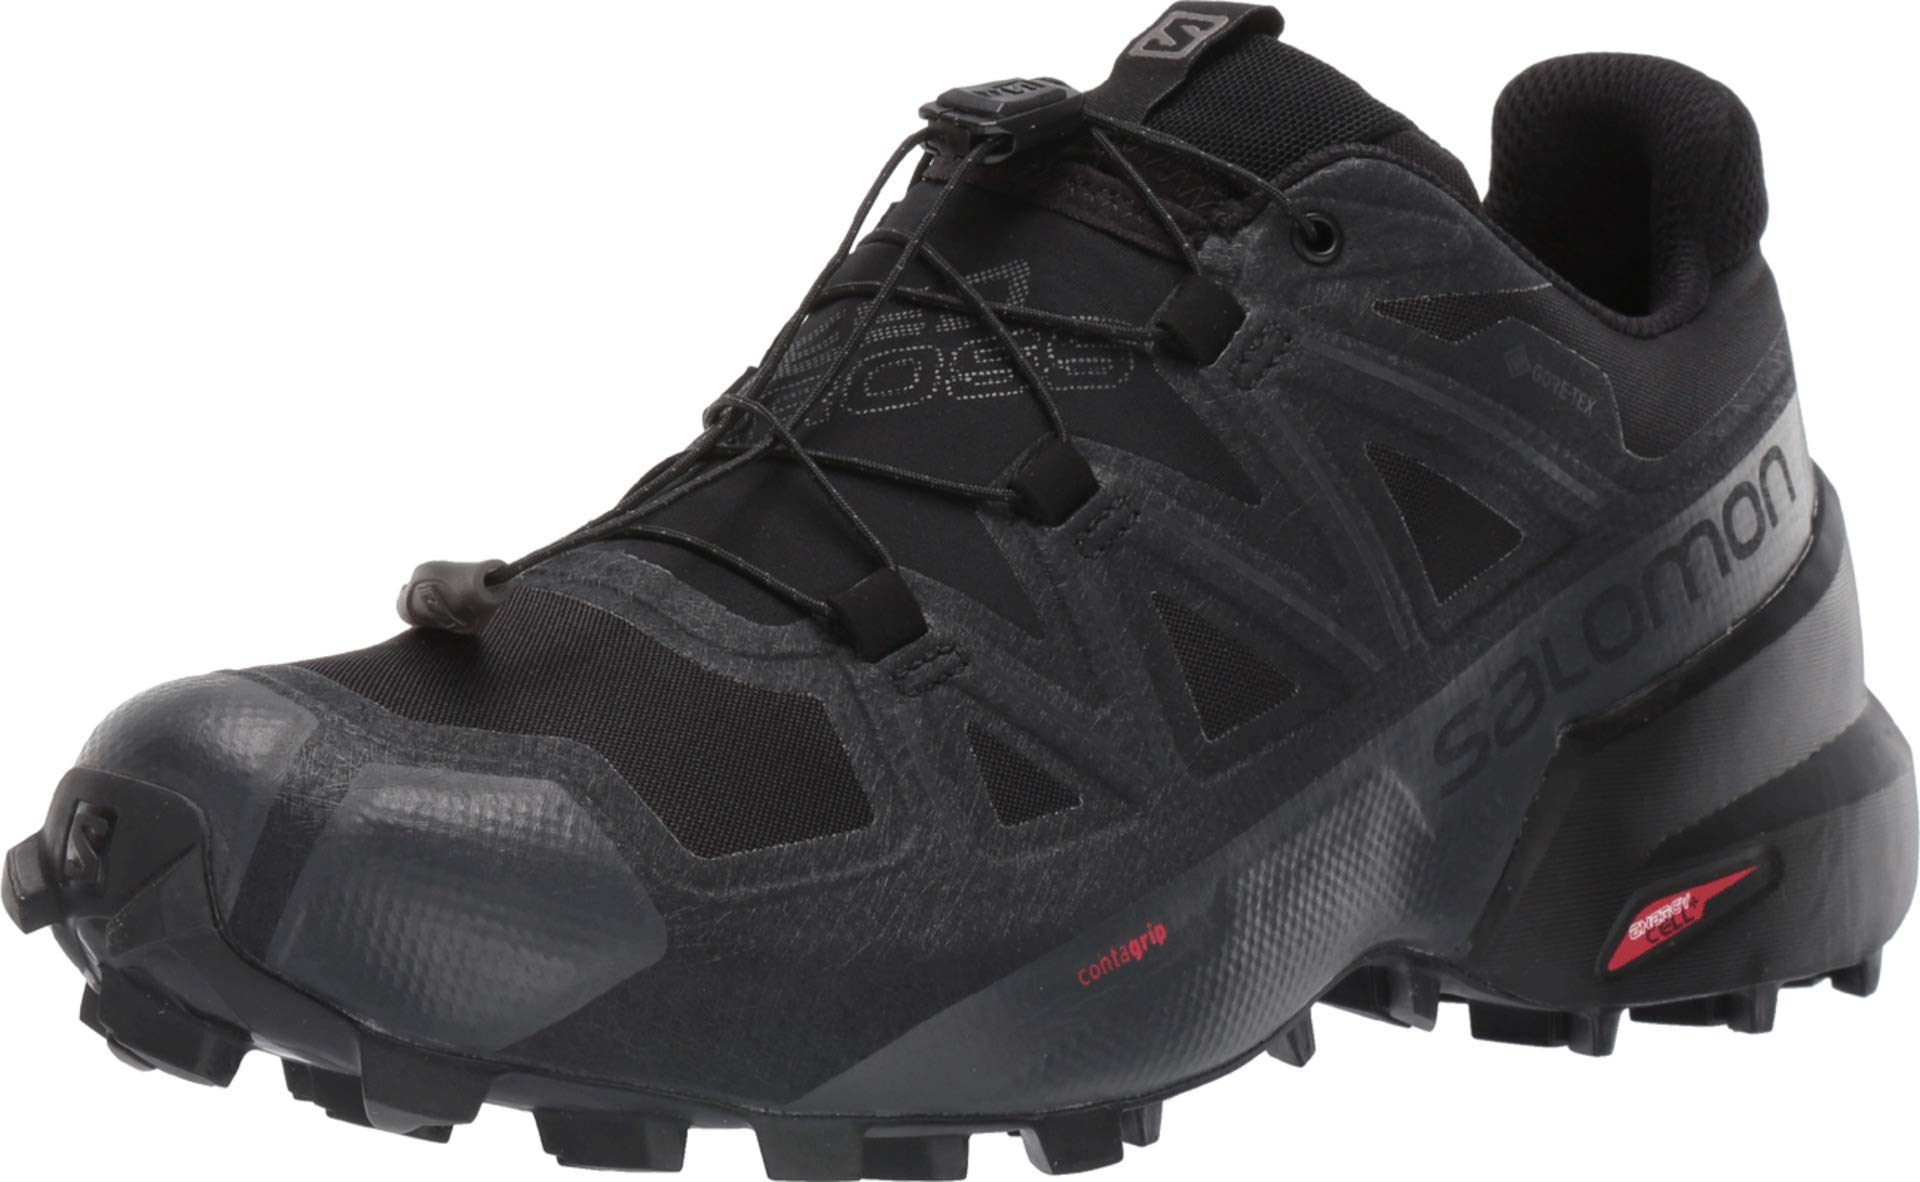 Salomon Women's Speedcross 5 GTX Trail Running Shoes, Black/Black/PHANTOM, 6 by SALOMON